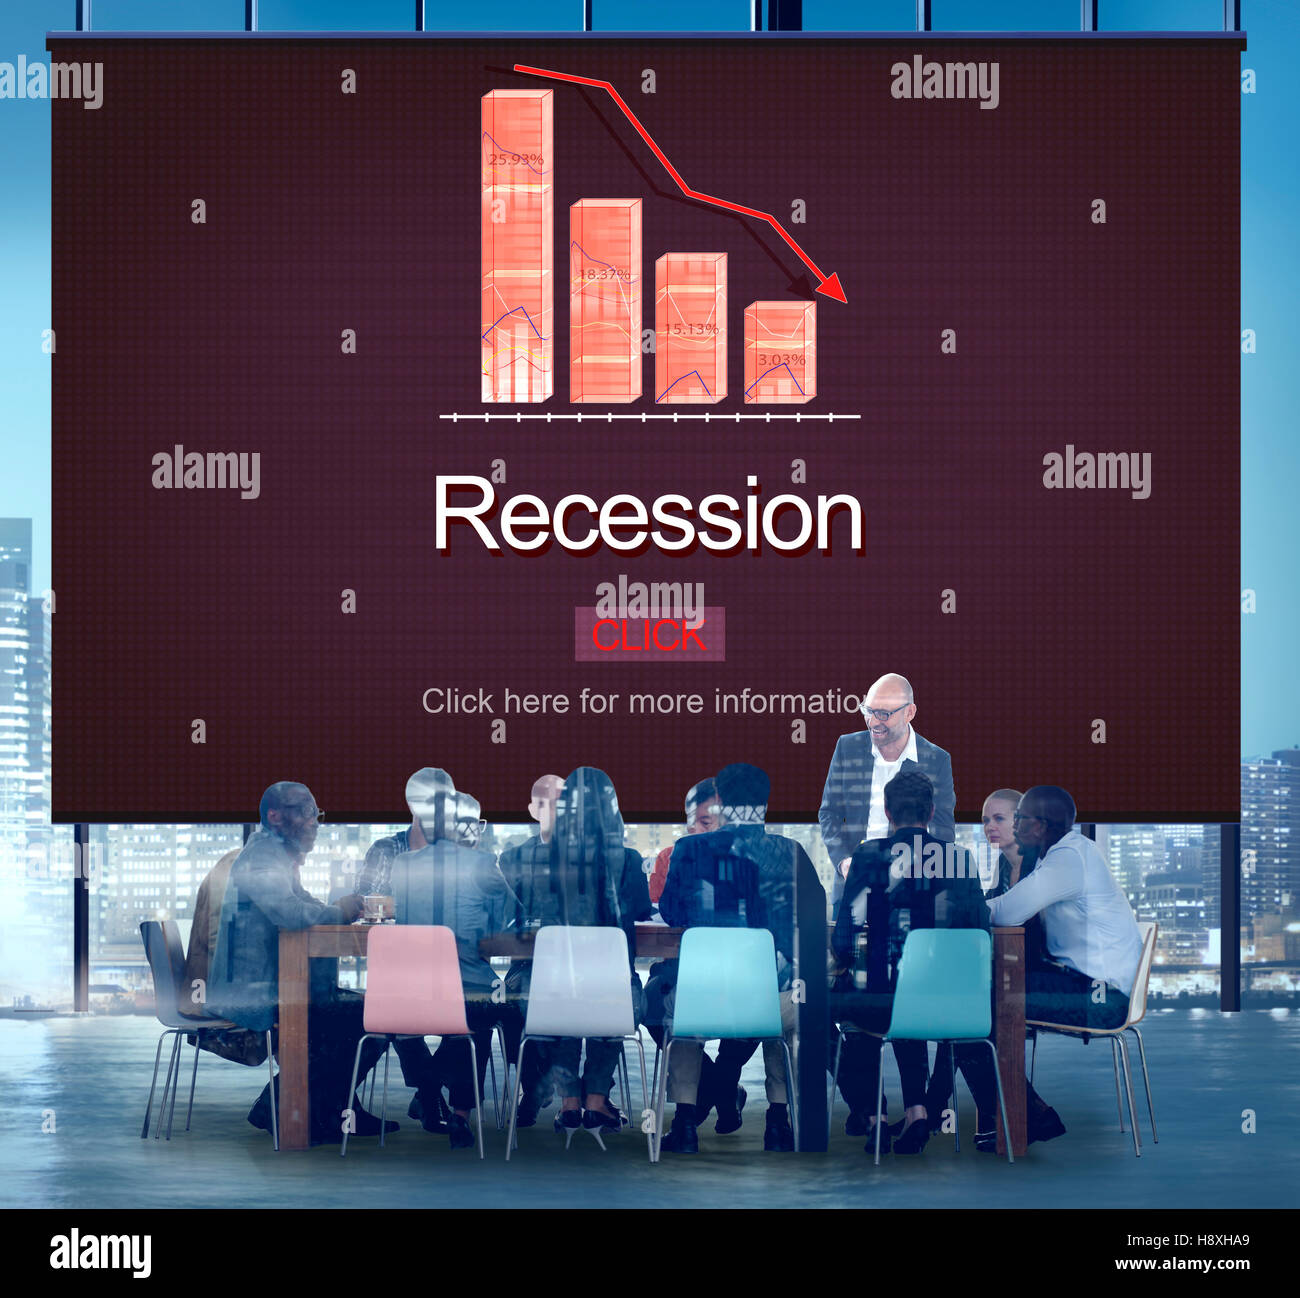 Recession Crisis Inflation Bankrupt Savings Trade Concept - Stock Image